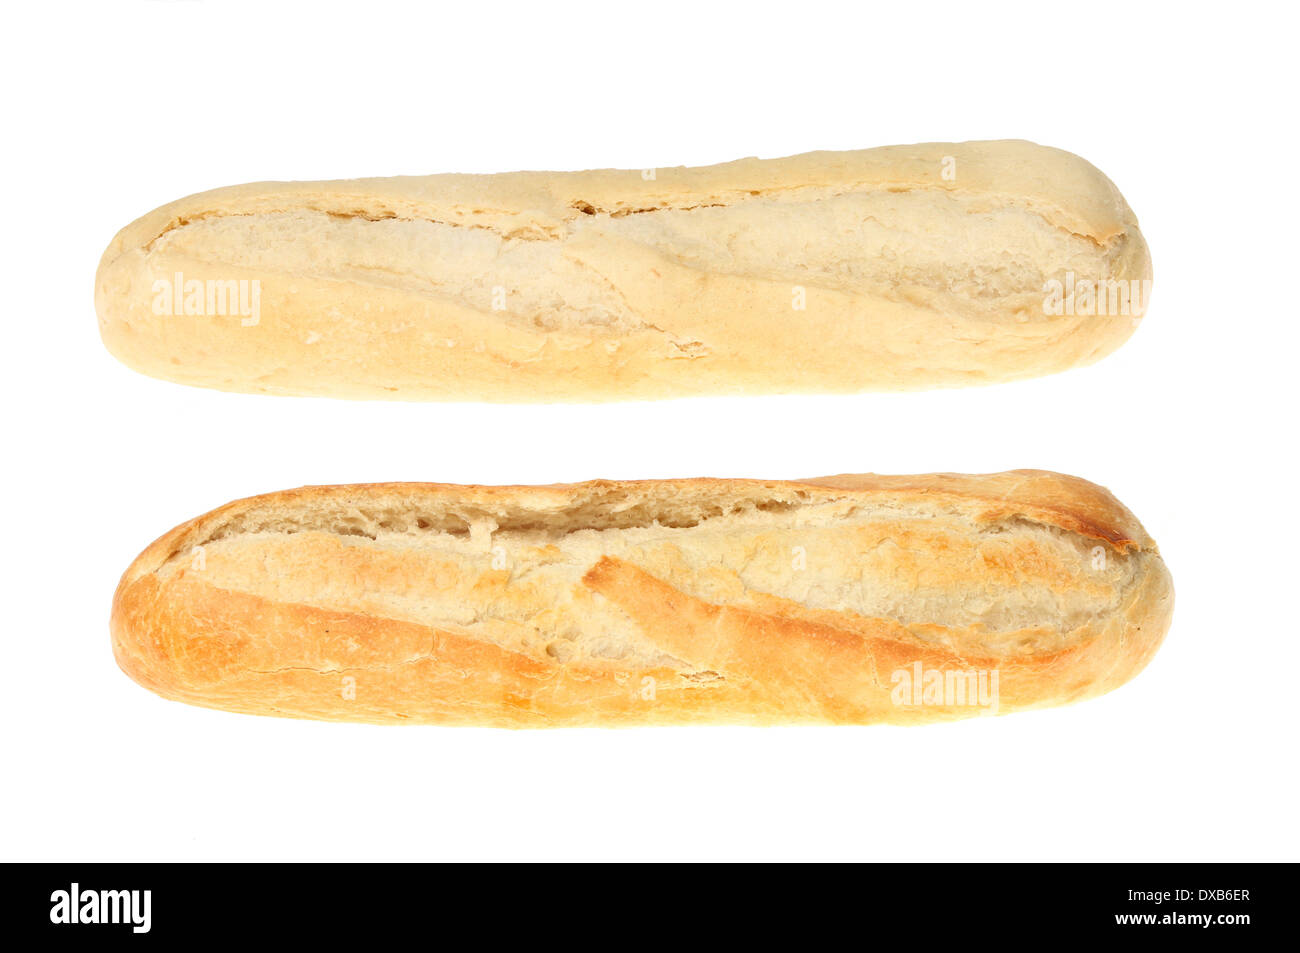 Part and fully baked baguettes isolated against white - Stock Image